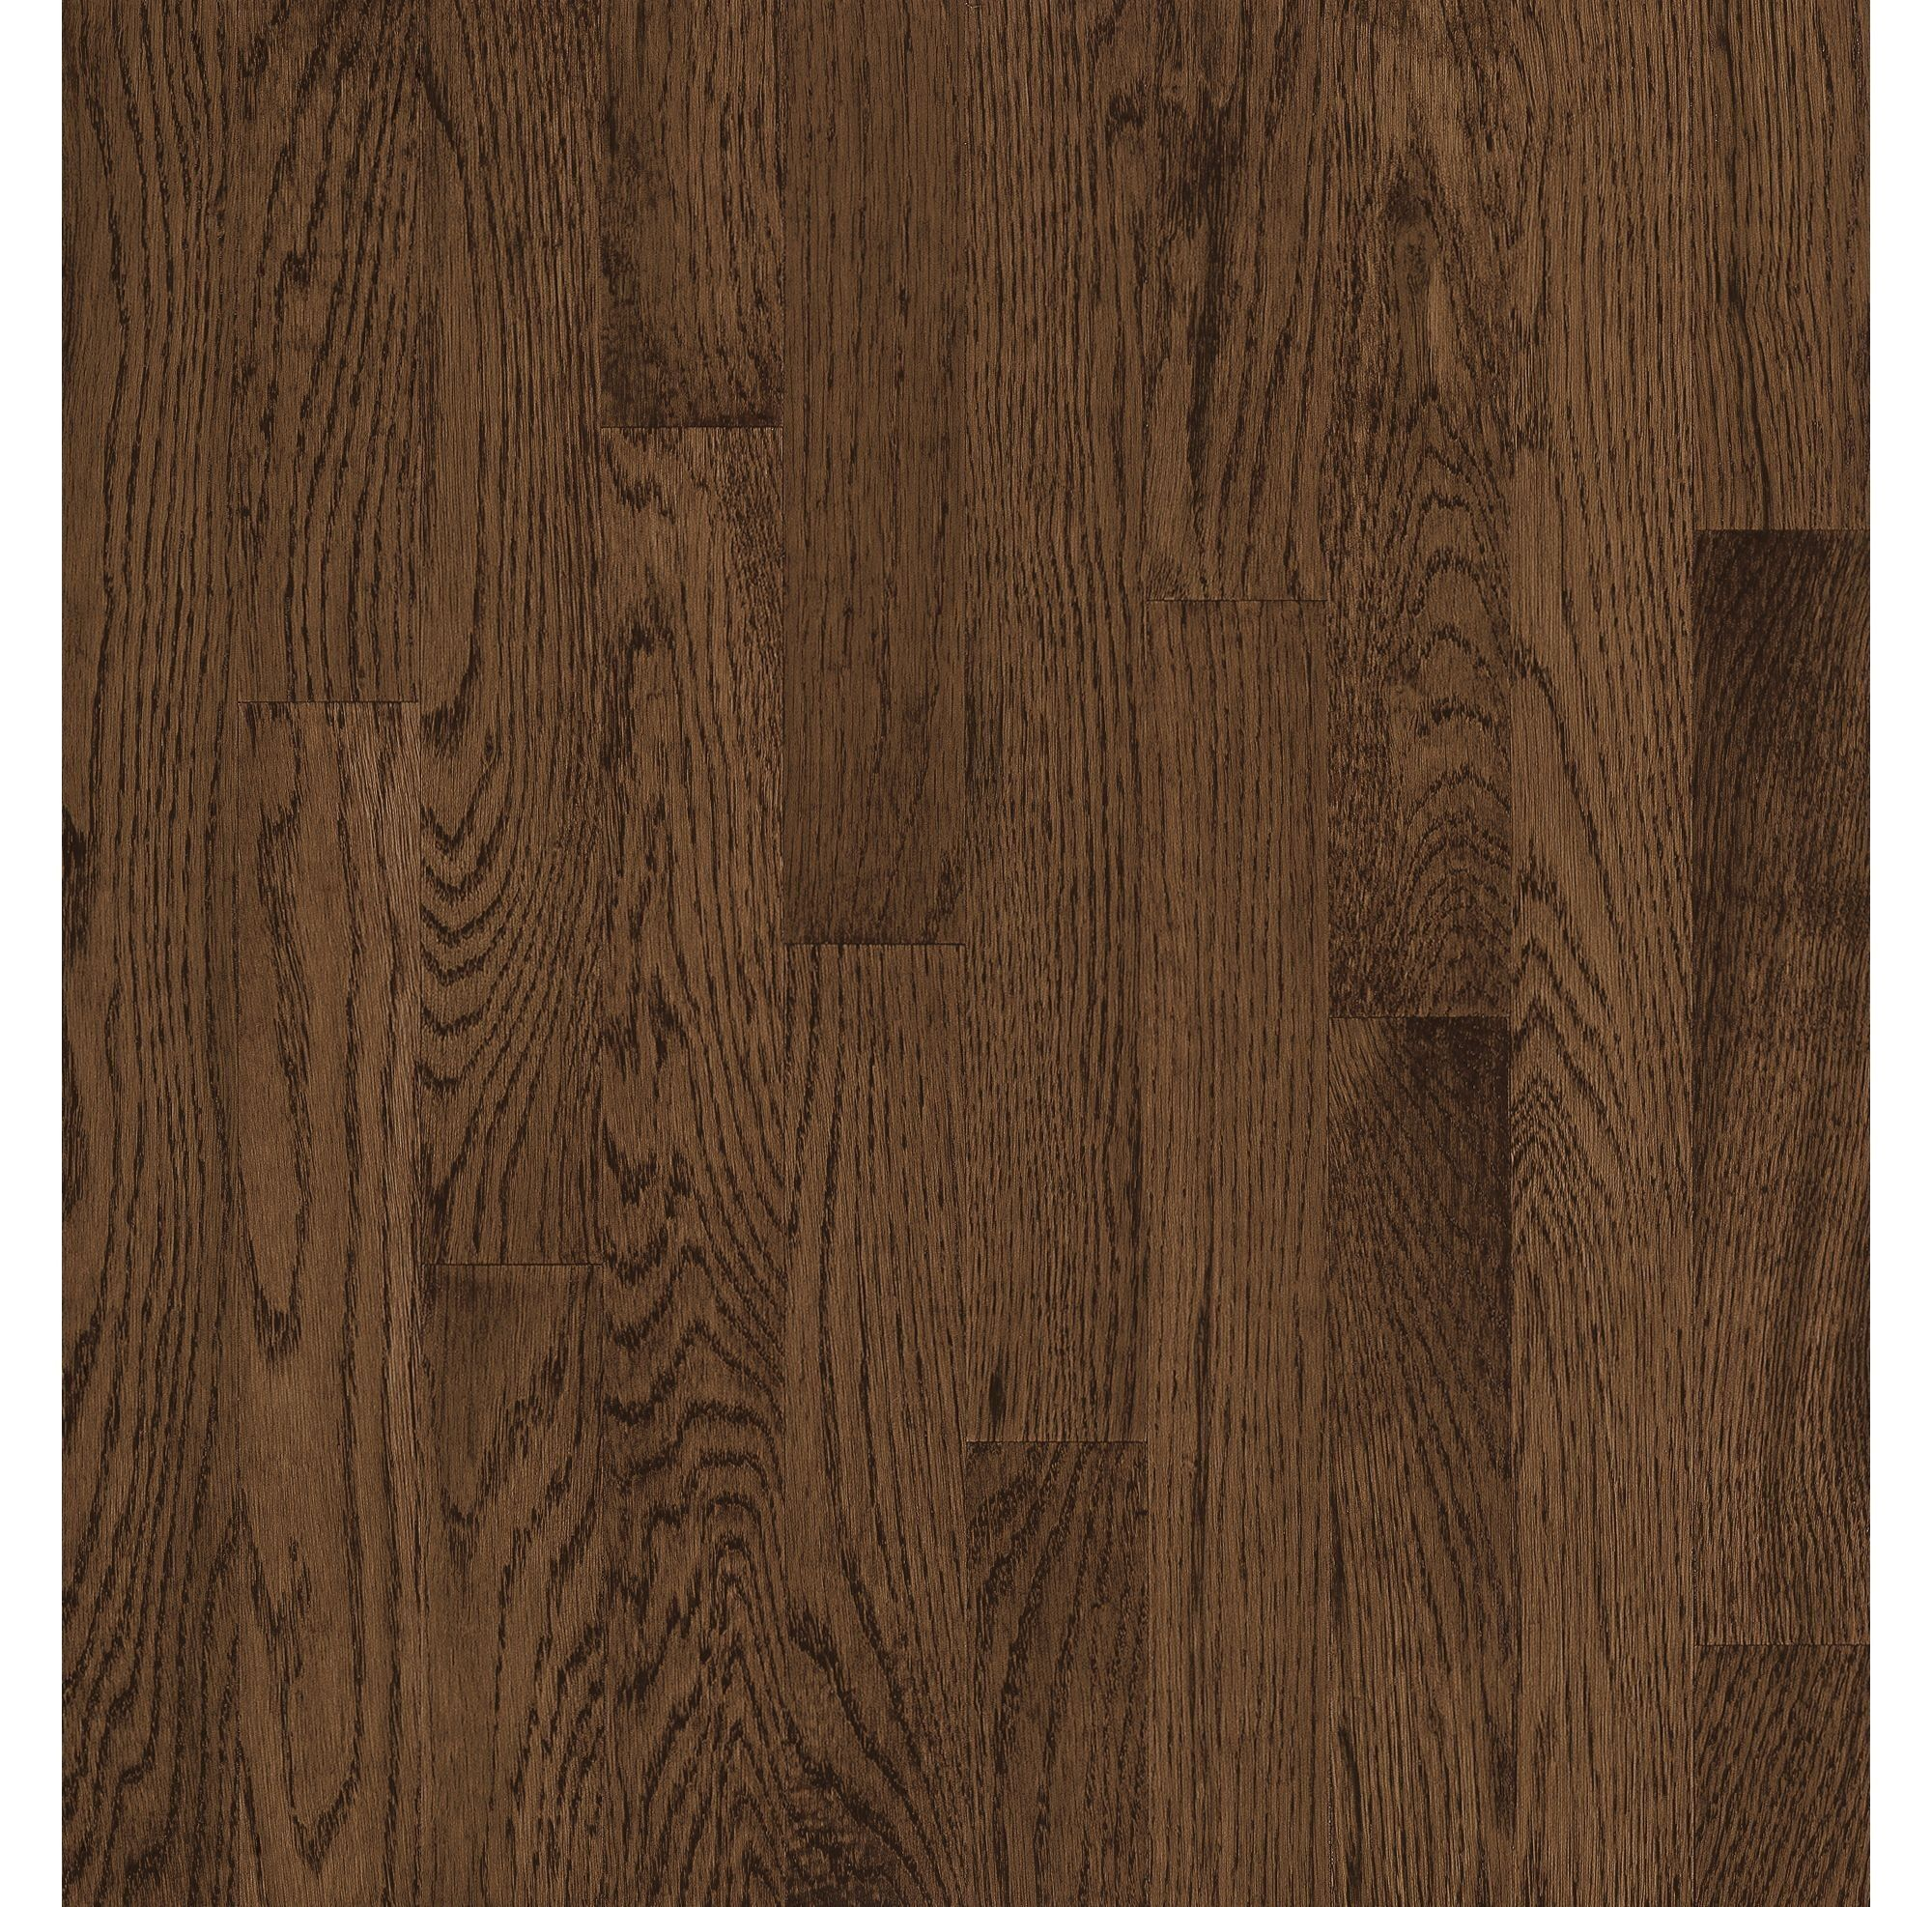 oak floor texture Google Search Oak hardwood flooring